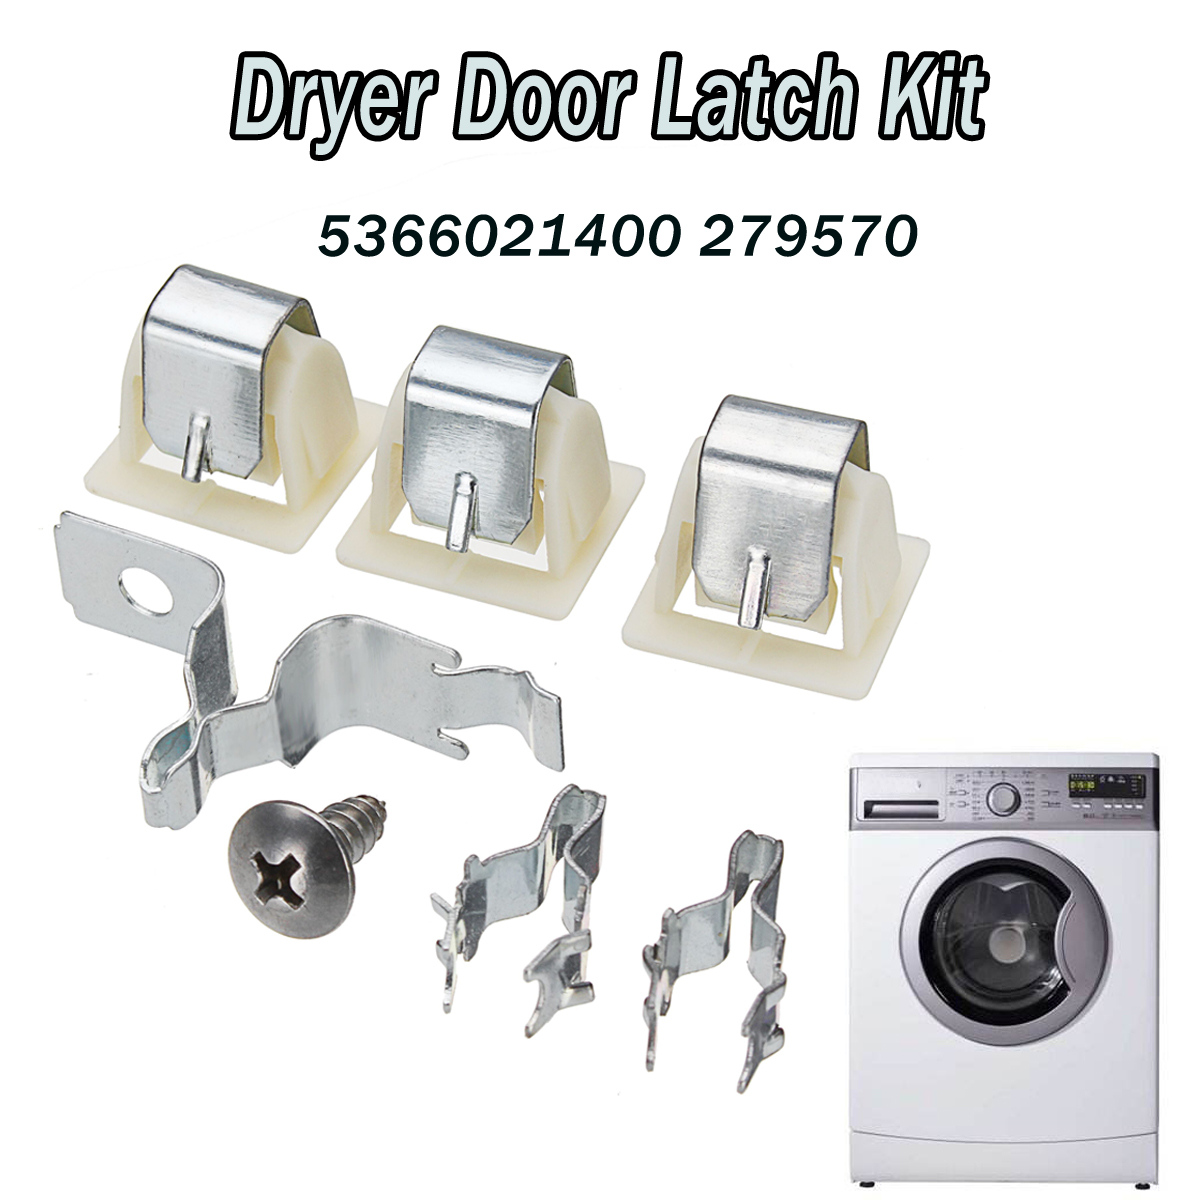 medium resolution of dryer door latch kit part for electrolux frigidaire kenmore 5366021400 279570 in clothes dryer parts from home appliances on aliexpress com alibaba group